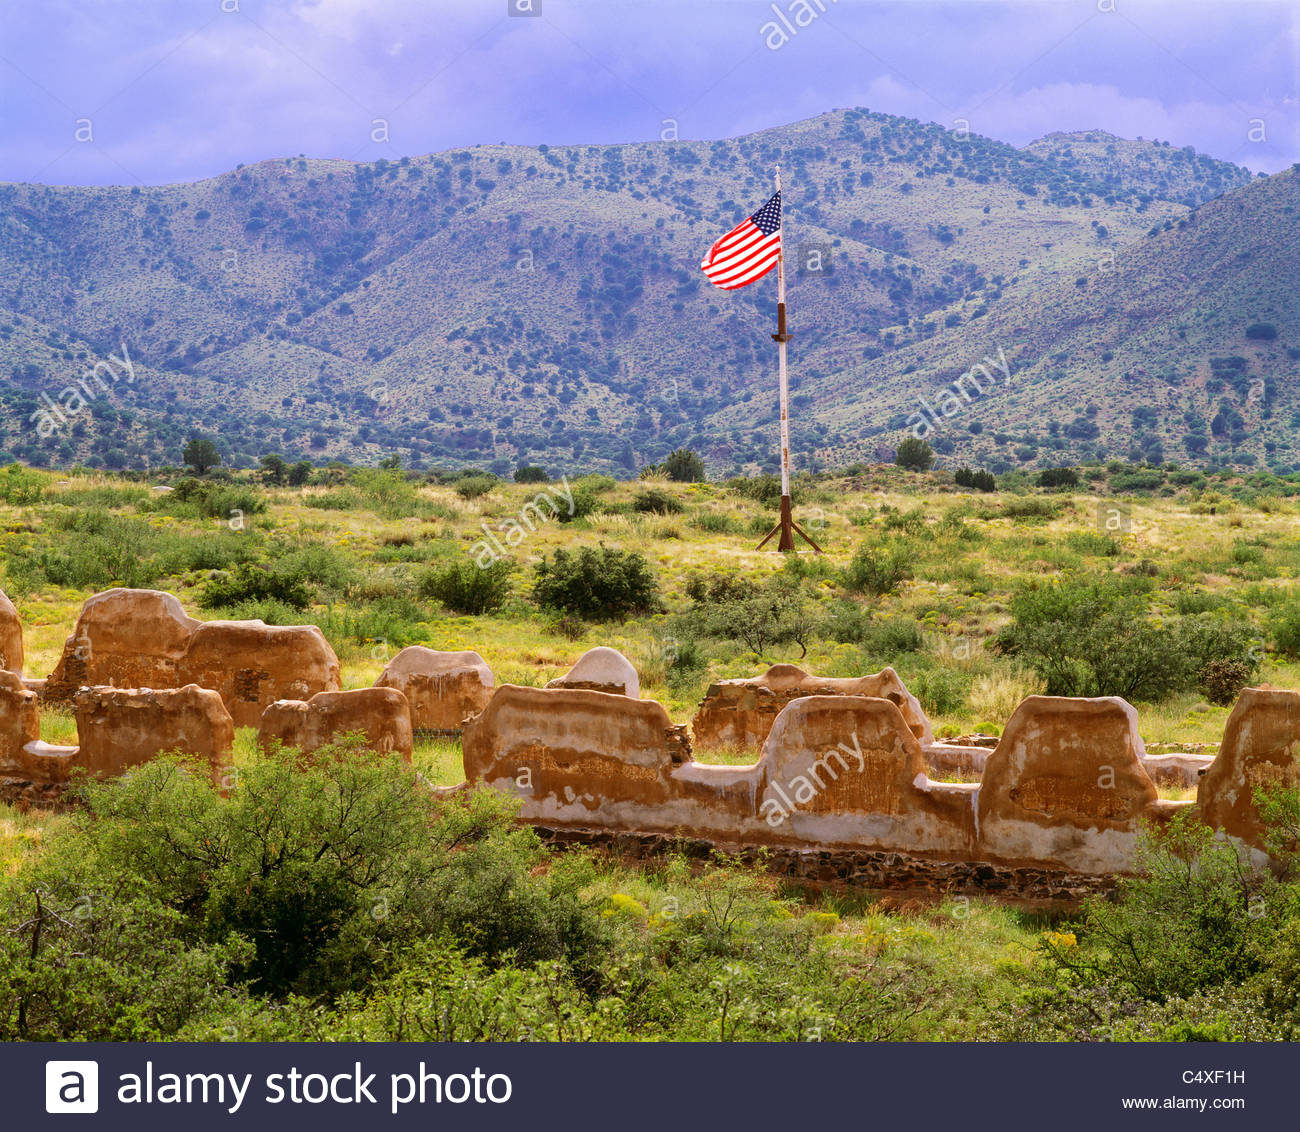 The [cavalry barracks]  at 'Fort Bowie'  [Fort Bowie National Historic Site] Arizona - Stock Image